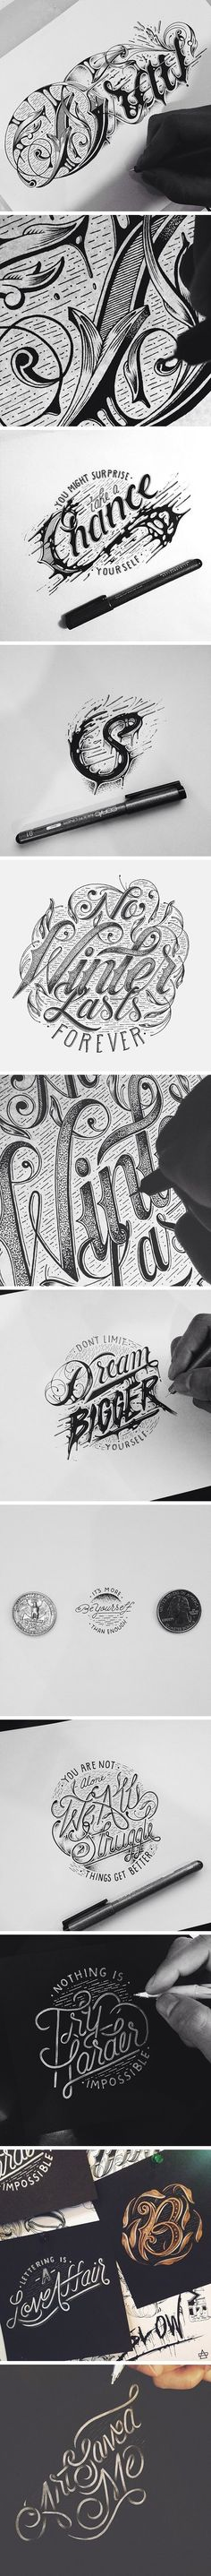 Hand Typography! I am currently trying to learn how to create unique typefaces in Adobe Illustrator. This is very inspiring.